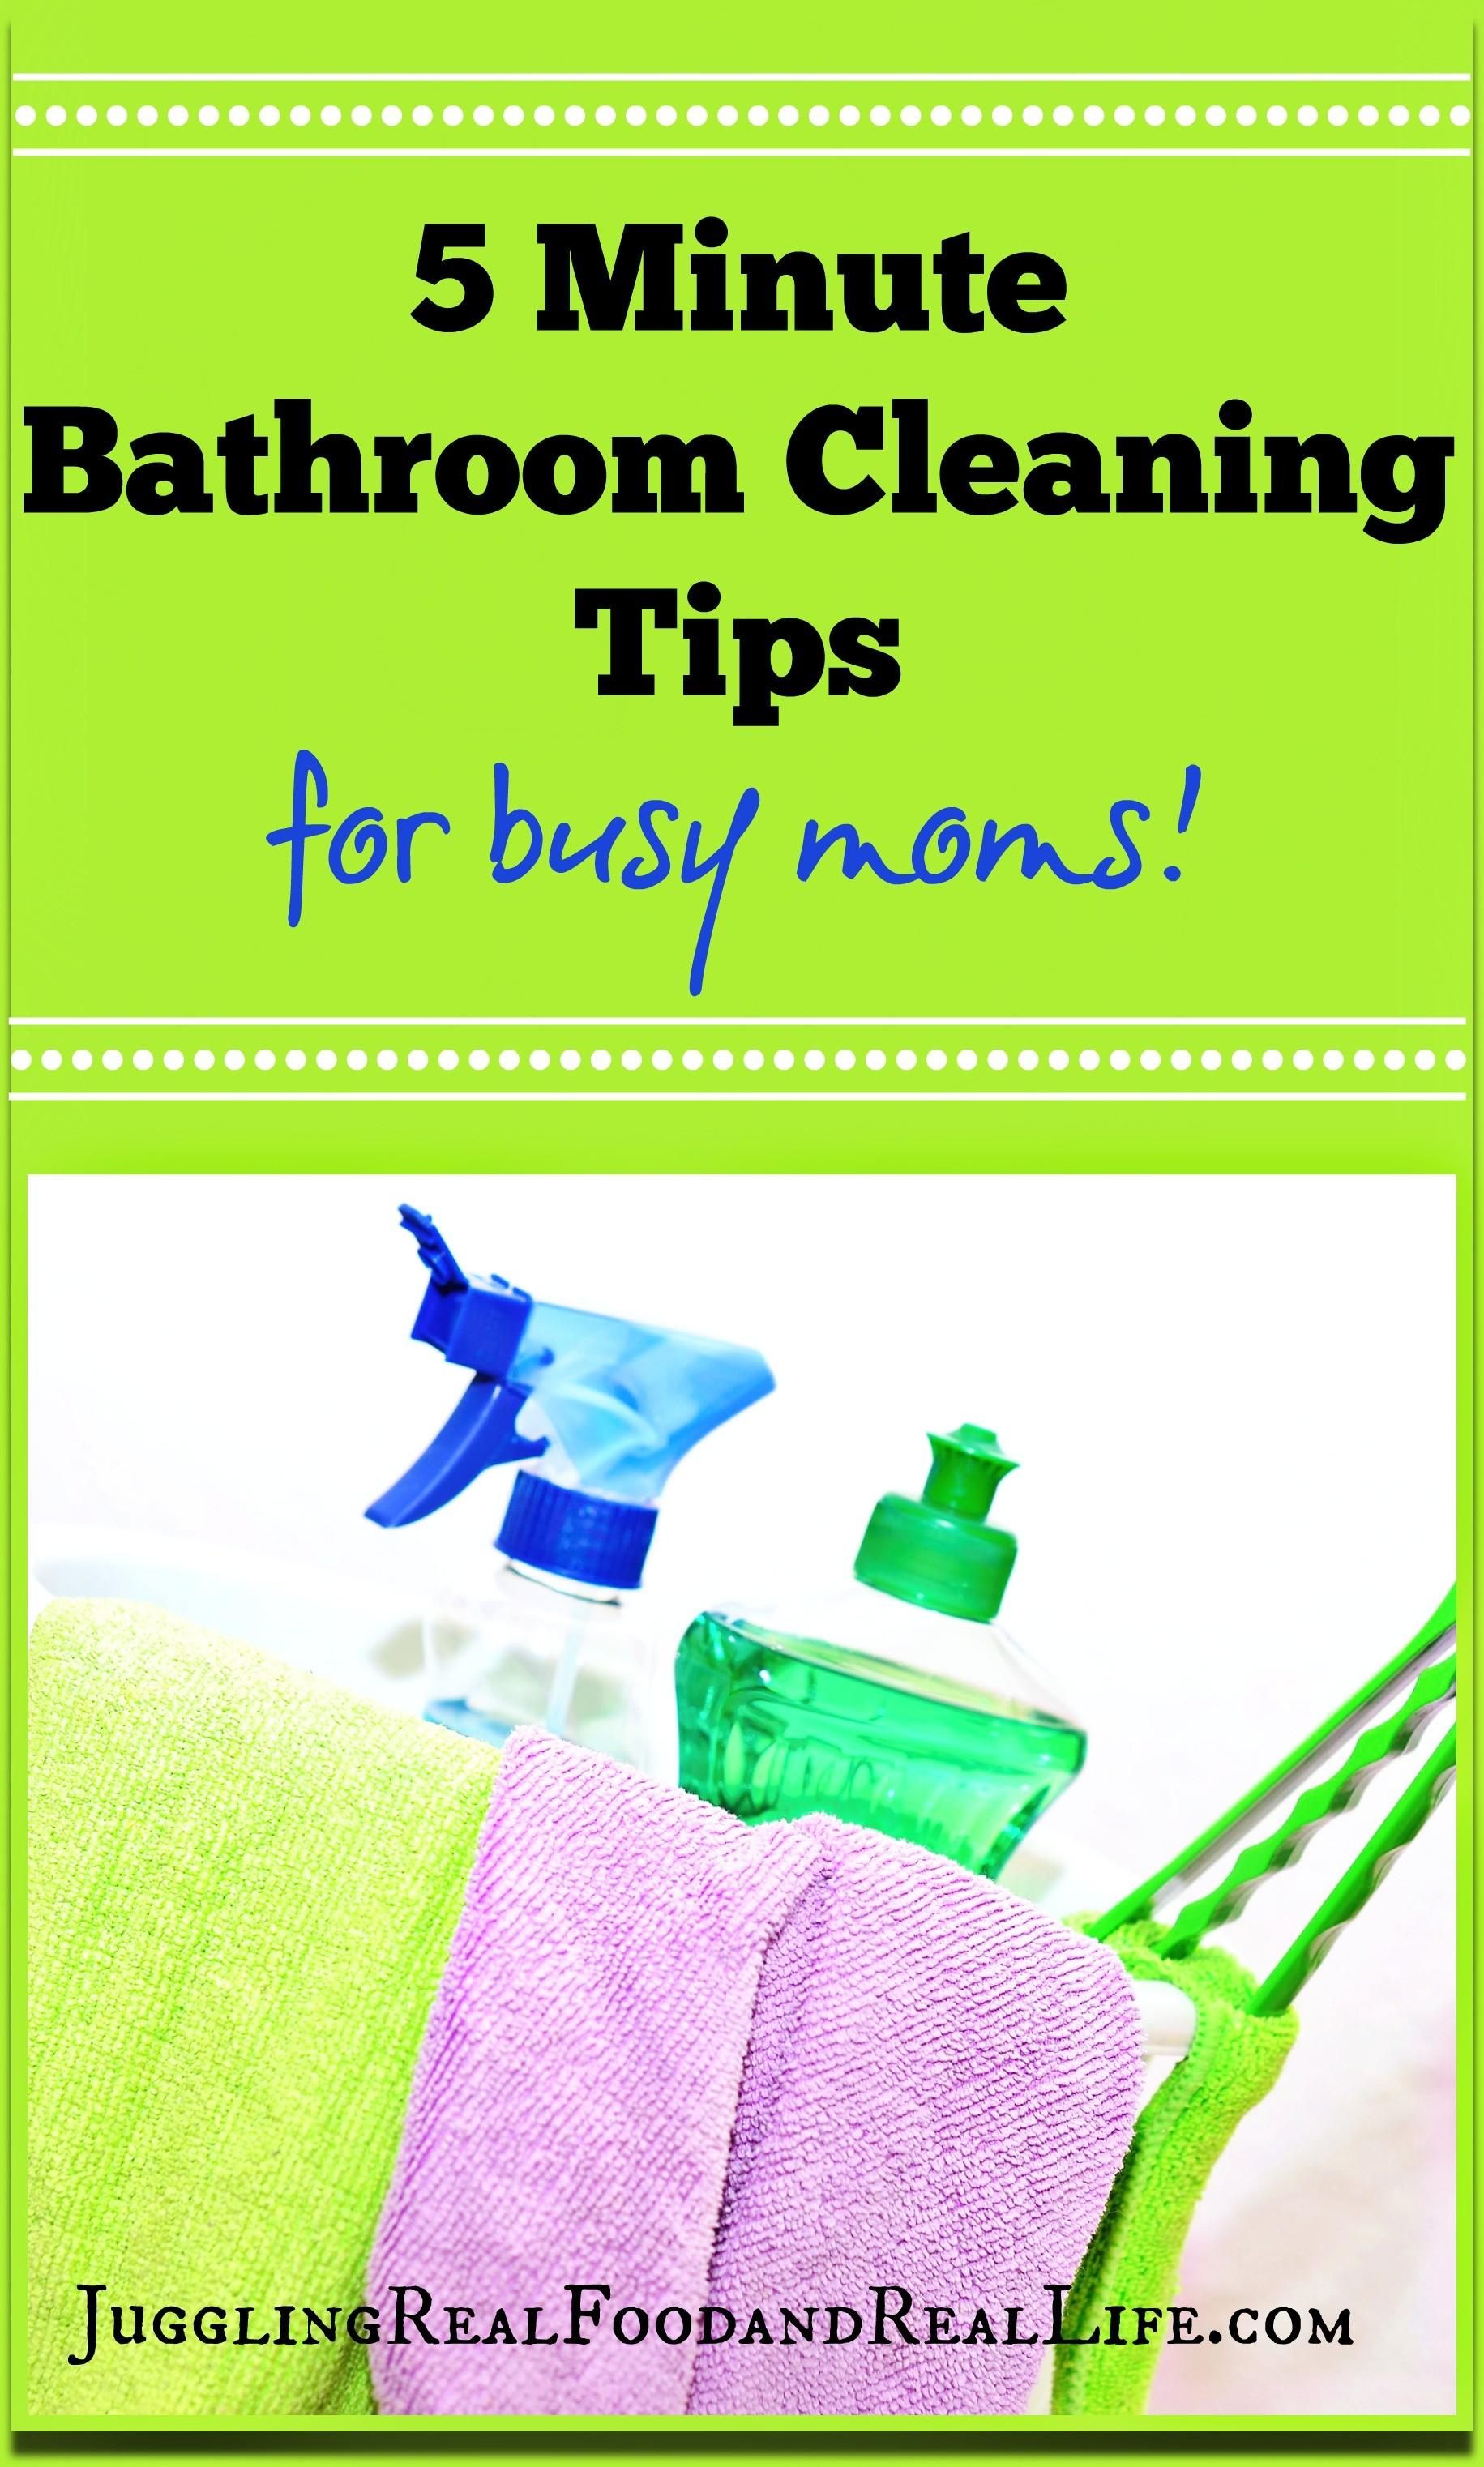 Minute Bathroom Cleaning Tips Busy Moms Juggling